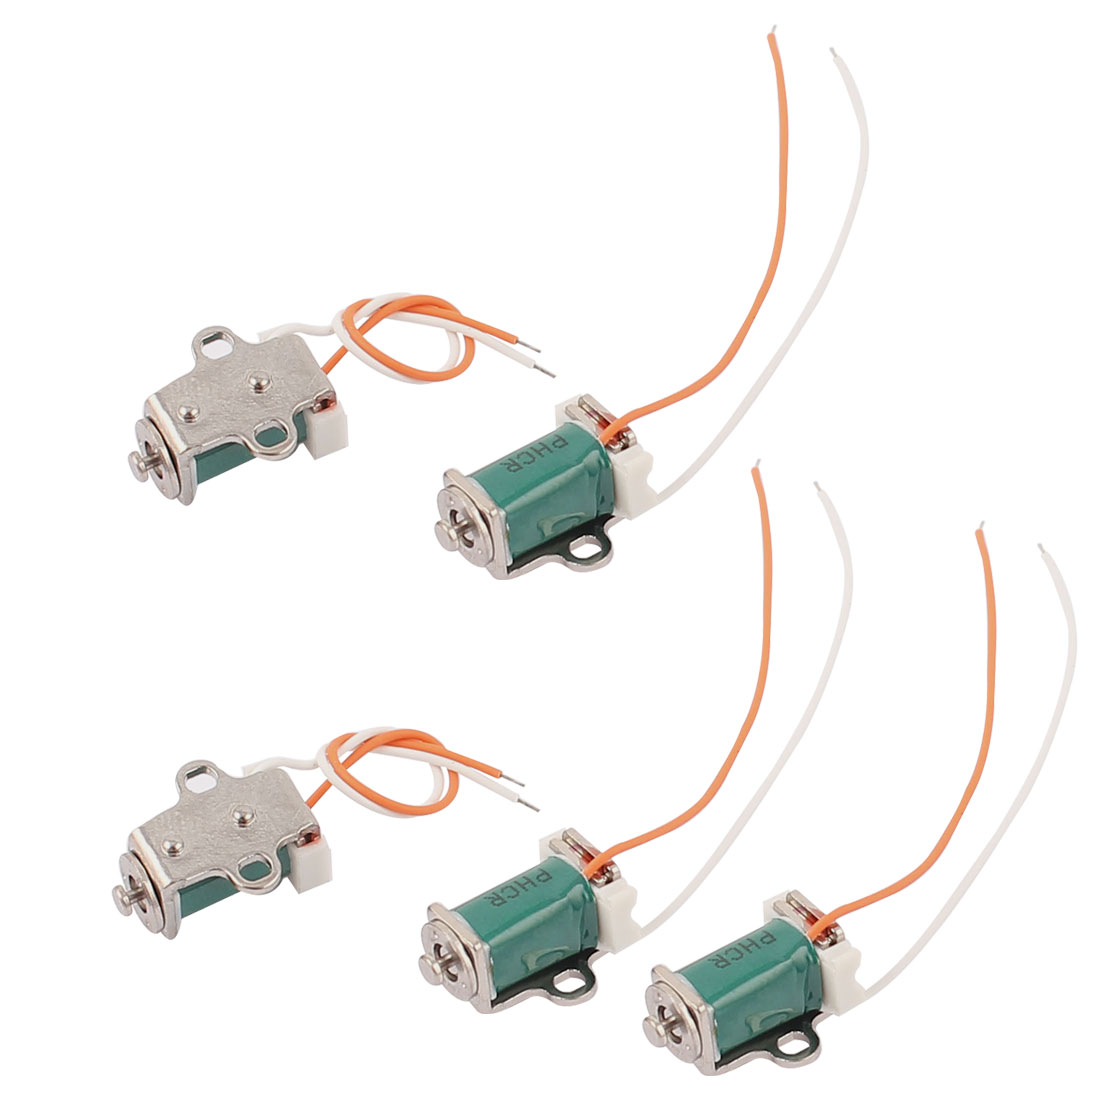 5Pcs DC3-4.5V 2 Wire Lead DC Micro Solenoid Electromagnetic Brake